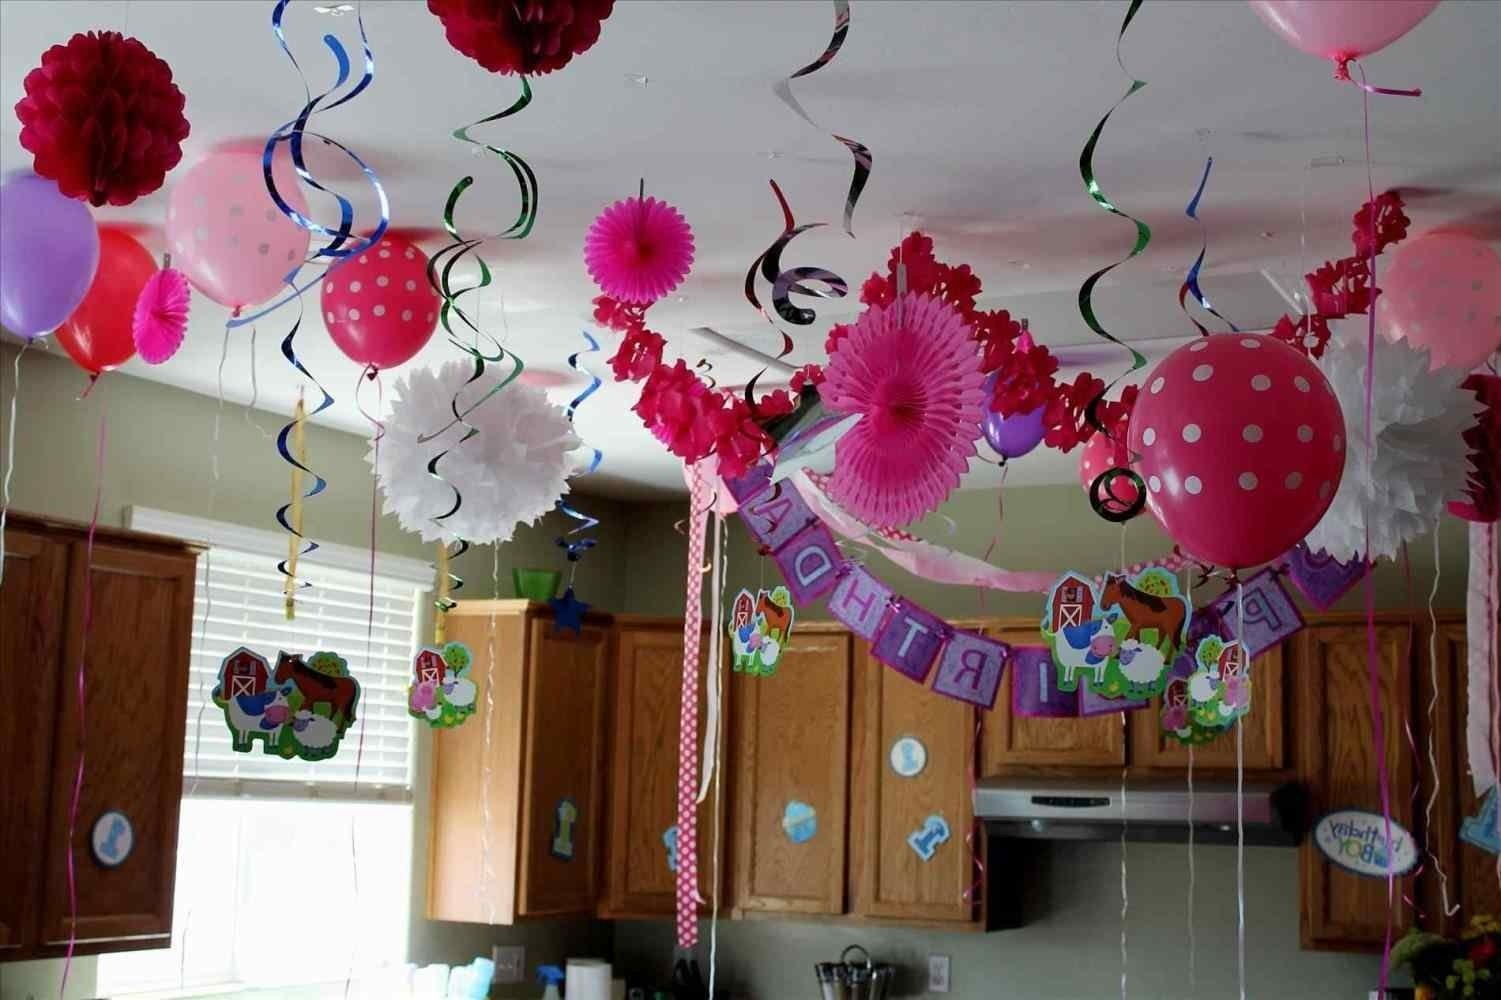 10 Attractive At Home Birthday Party Ideas Decorions For A St Good Design Decor 21st